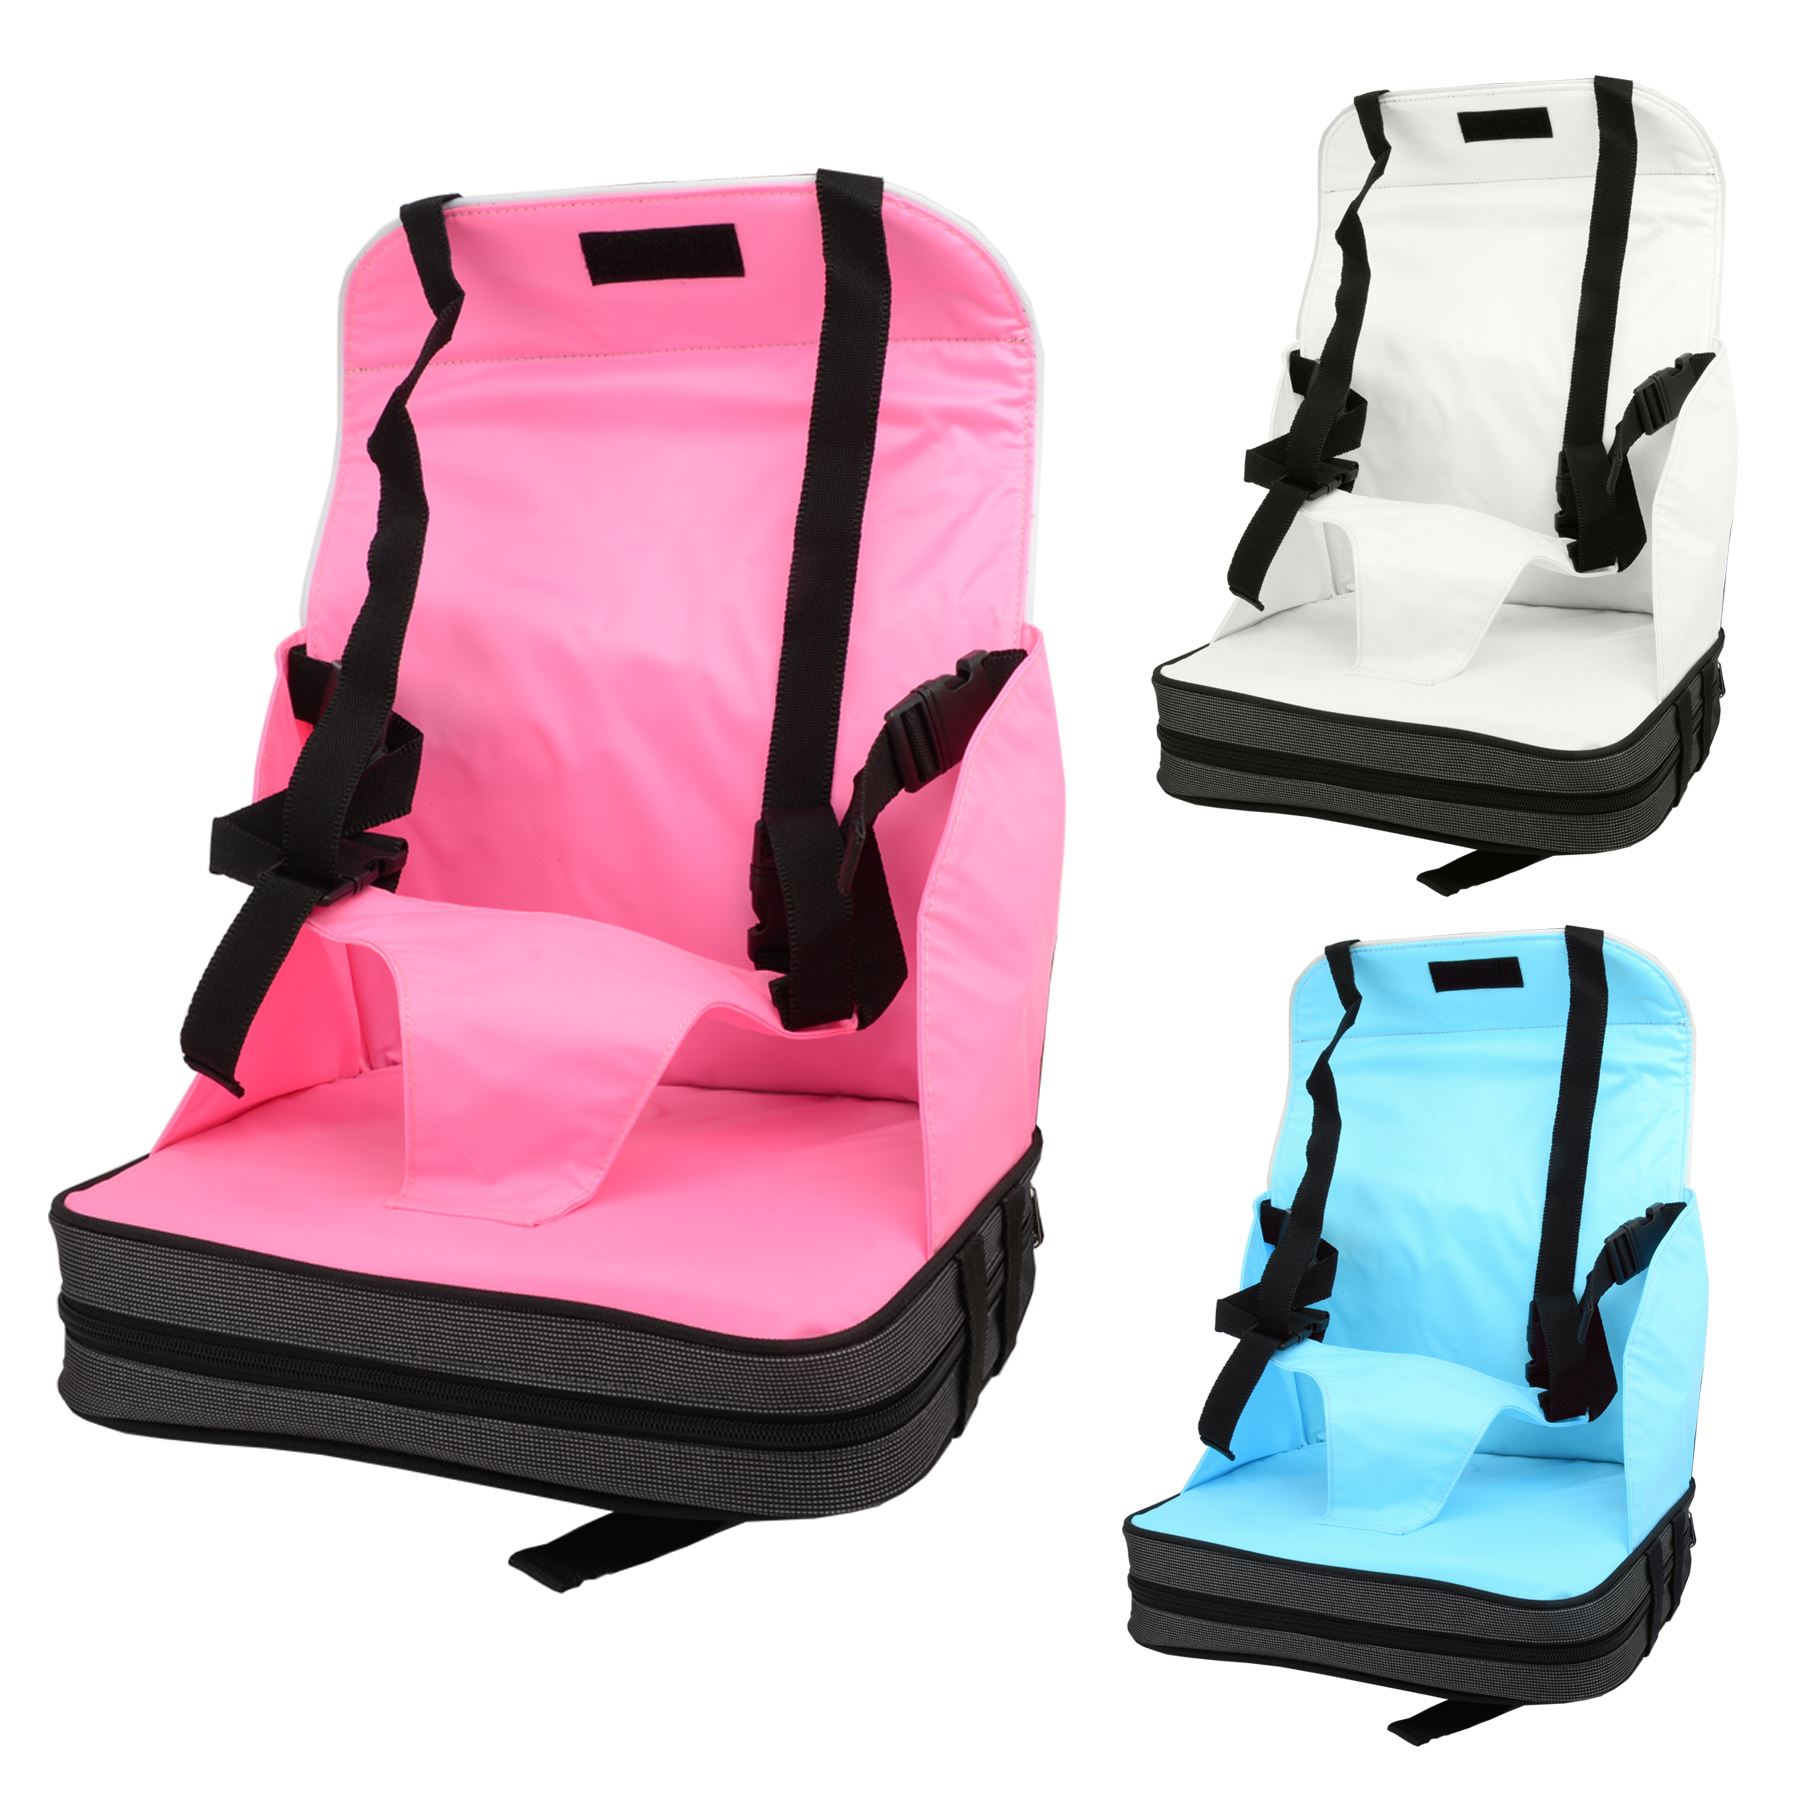 babyhugs portable baby toddler foldable dining chair on the go booster seat ebay. Black Bedroom Furniture Sets. Home Design Ideas